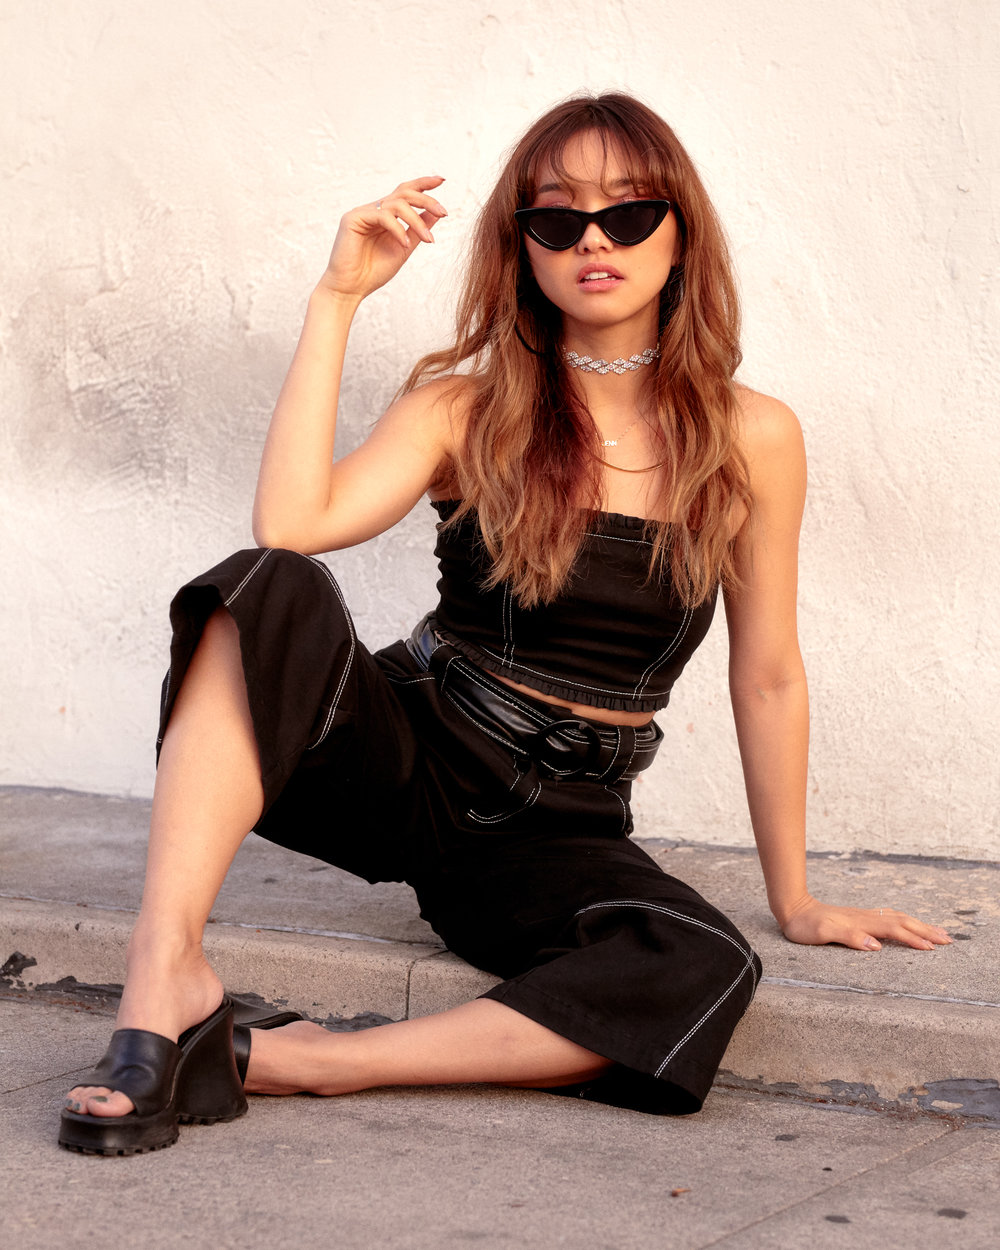 Copy of Jenn Im for The Eggie Shop, Styled by Kaemi Shot by Keith Oshiro